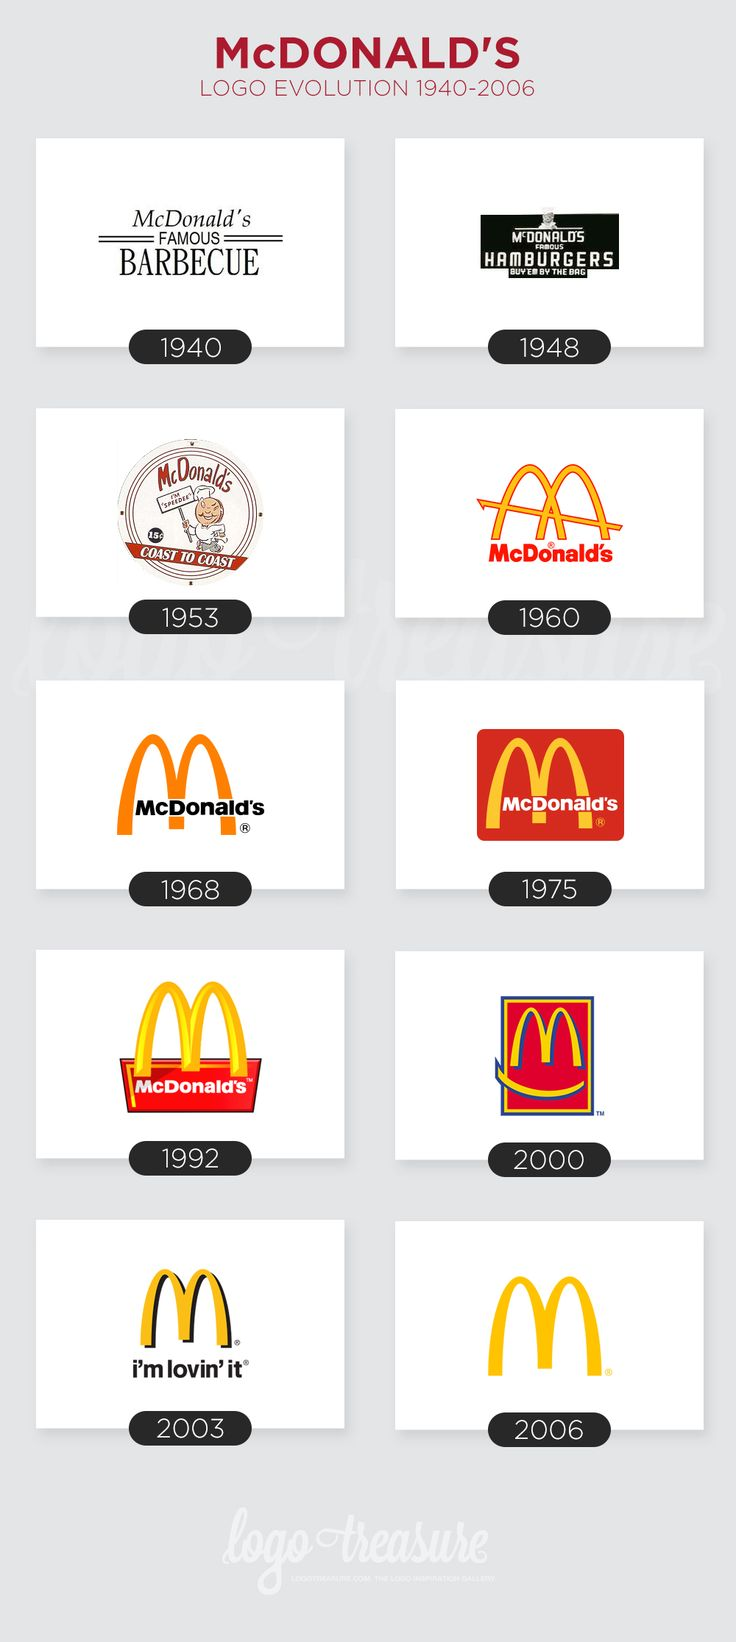 On the Creative Market Blog - The Unexpected History Behind 4 Iconic Logos